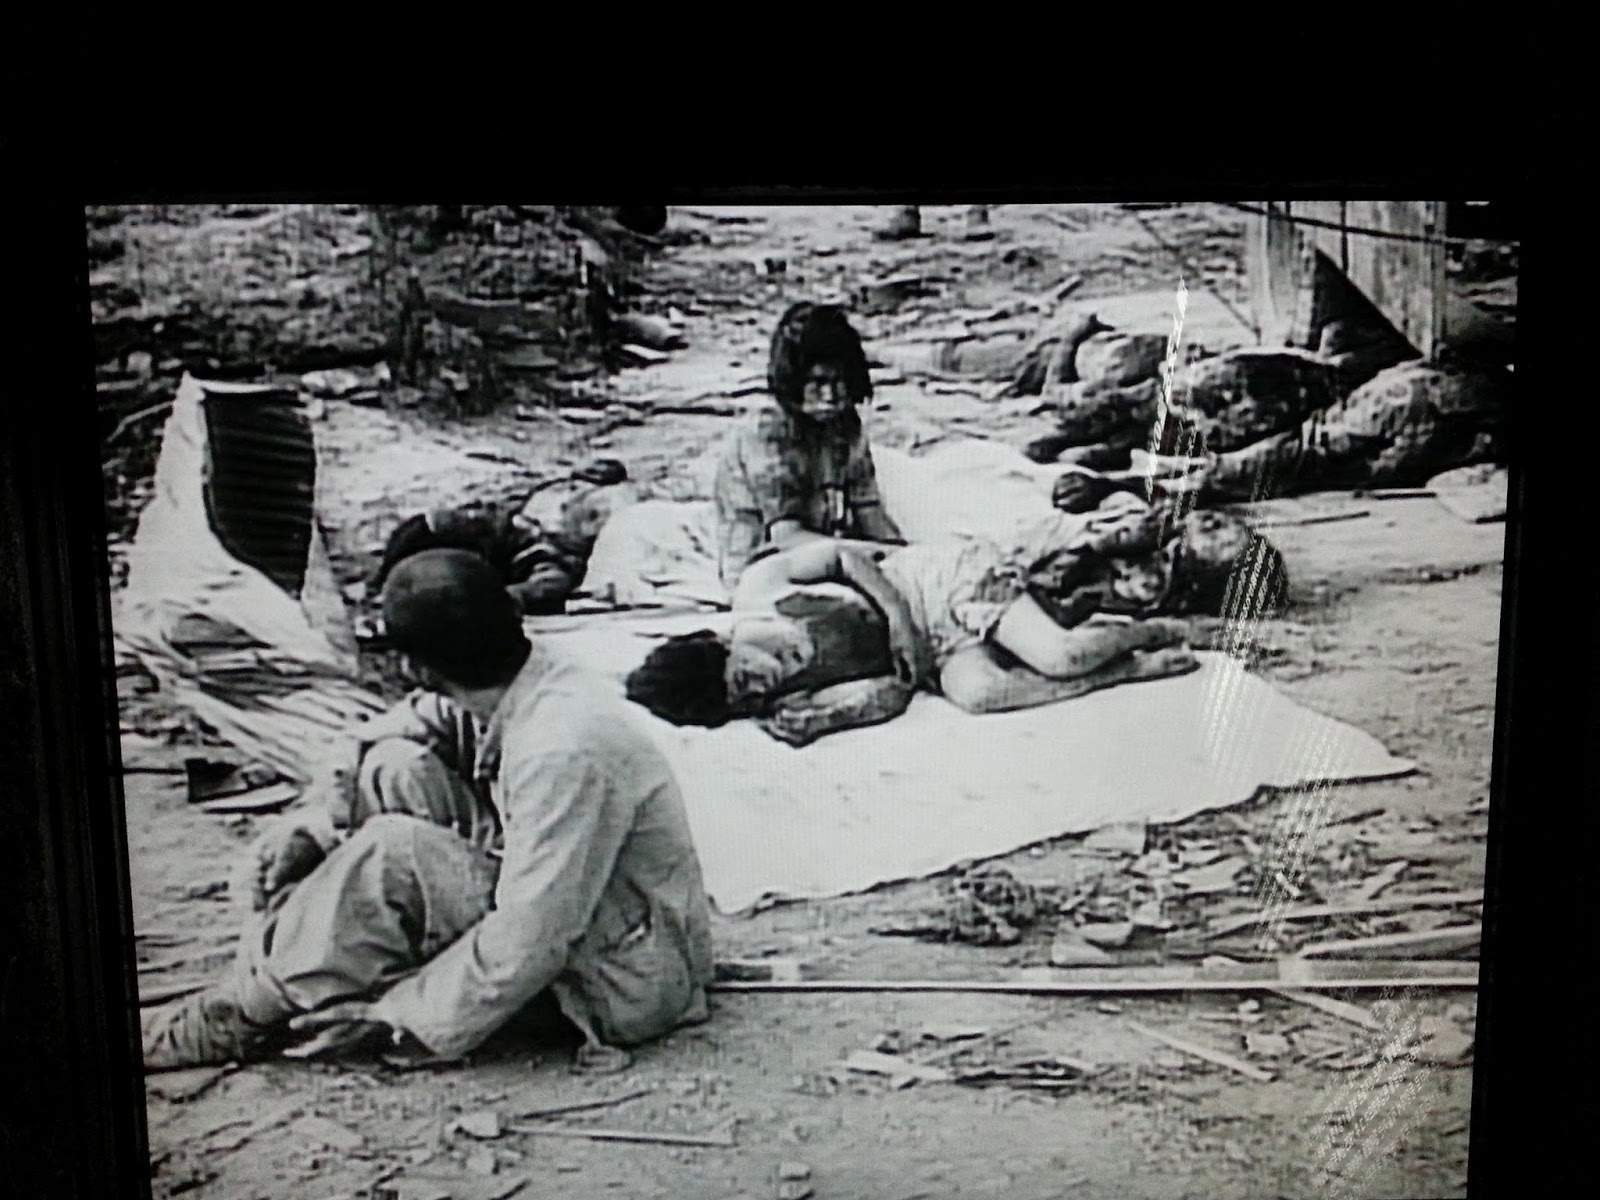 the sickening truth of the atomic bombing of hiroshima and nagasaki More: see the original operations orders for the atomic bombings of hiroshima and nagasaki the dropping of the bombs horrifies us today, but at the time.